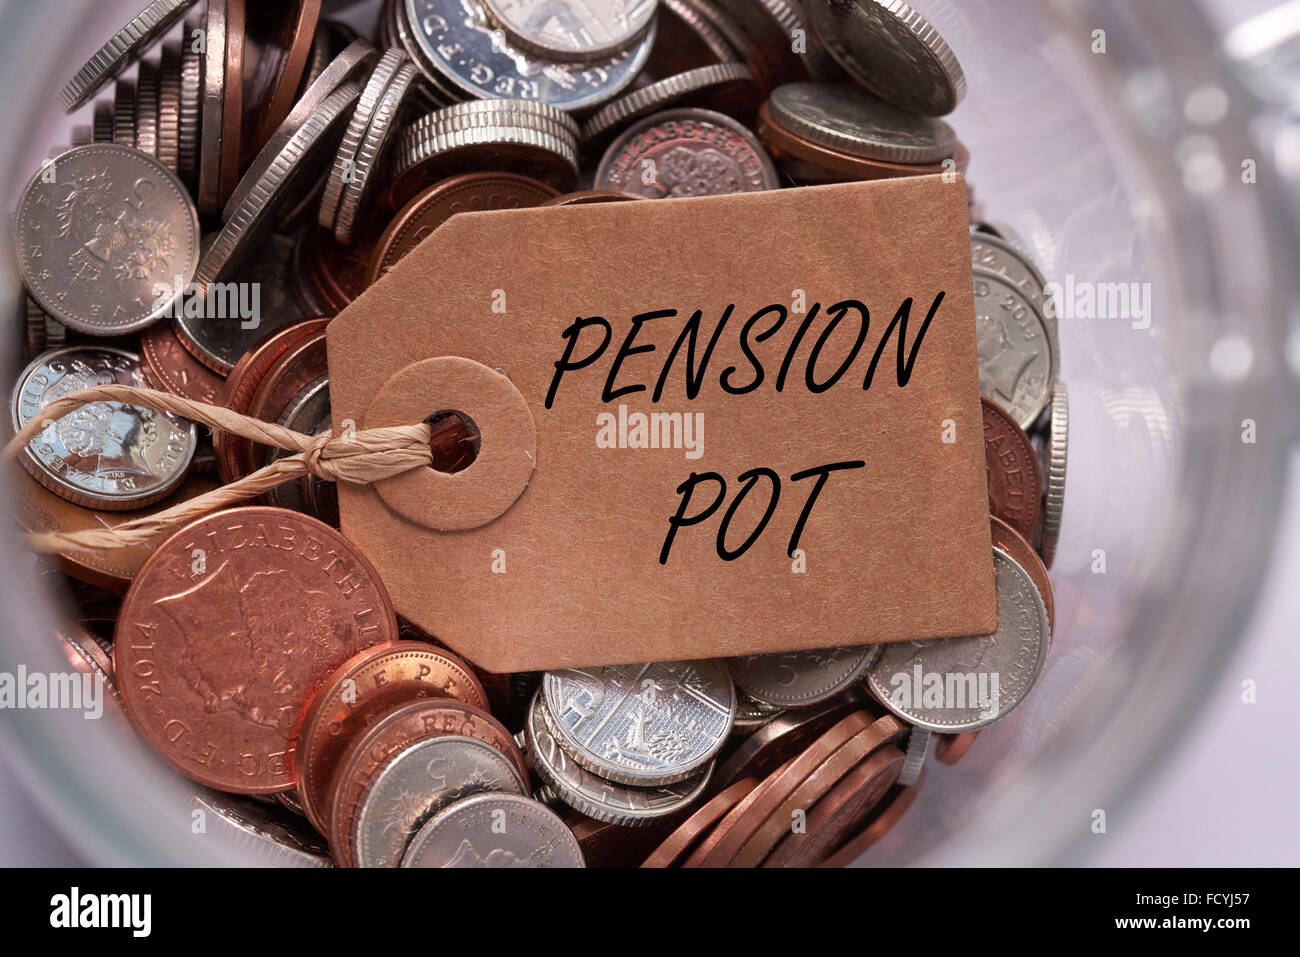 pension pot label on british mixed coins inside a glass jar concept concept - Stock Image